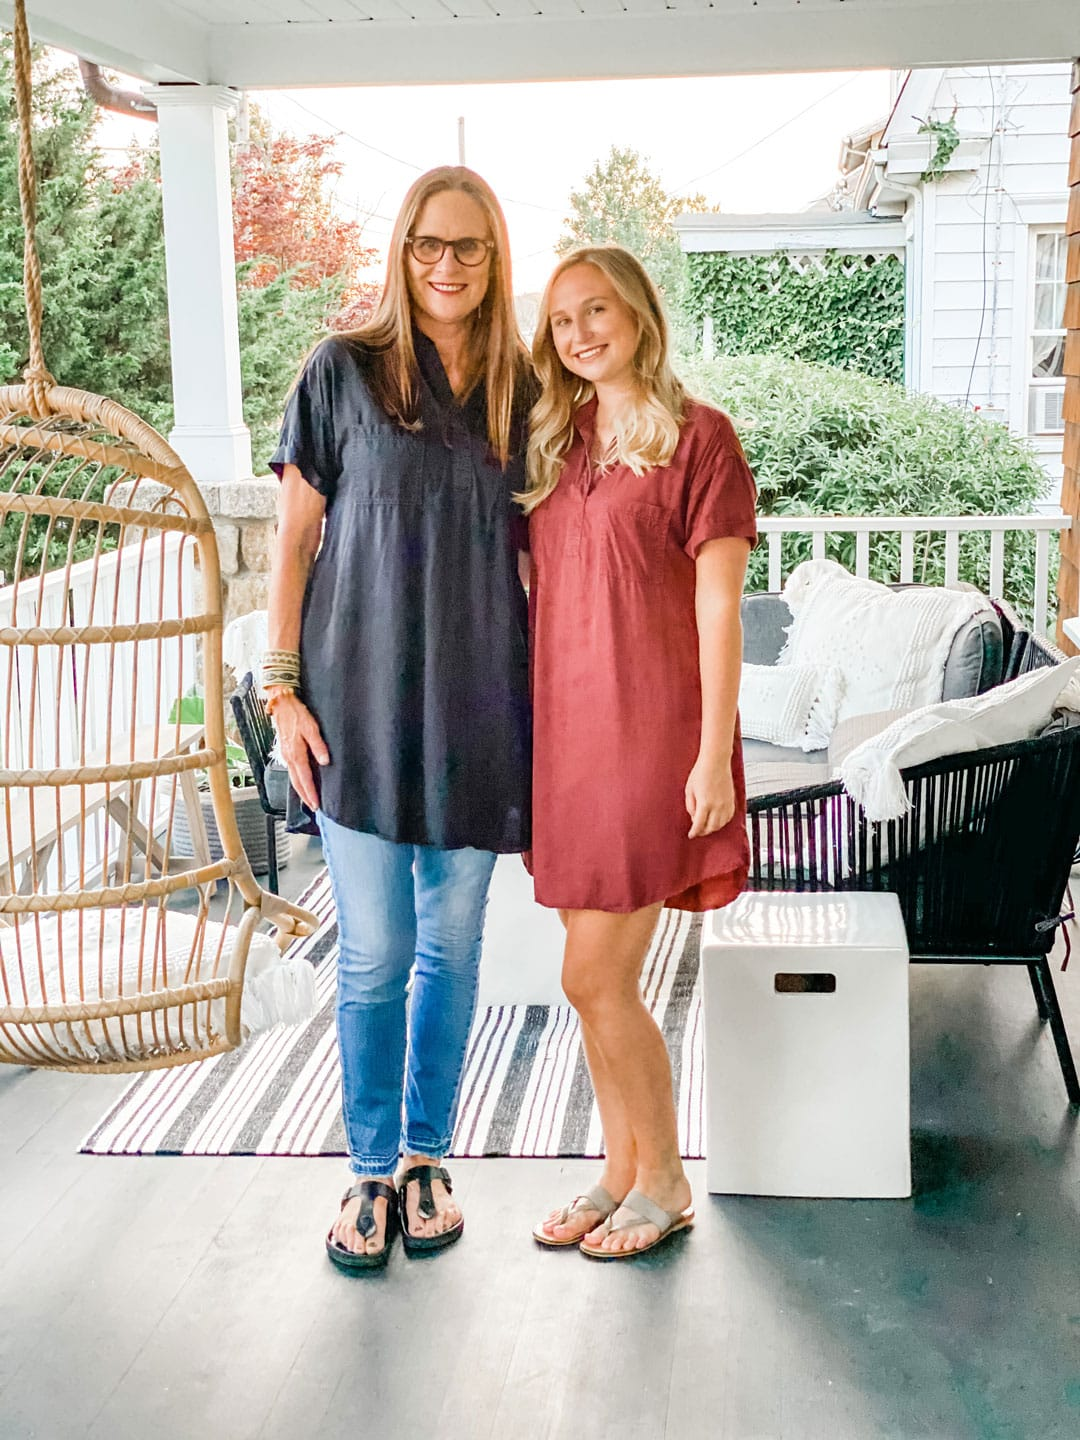 lifestye blogger Annie Diamond with her daughter wearing a target dress